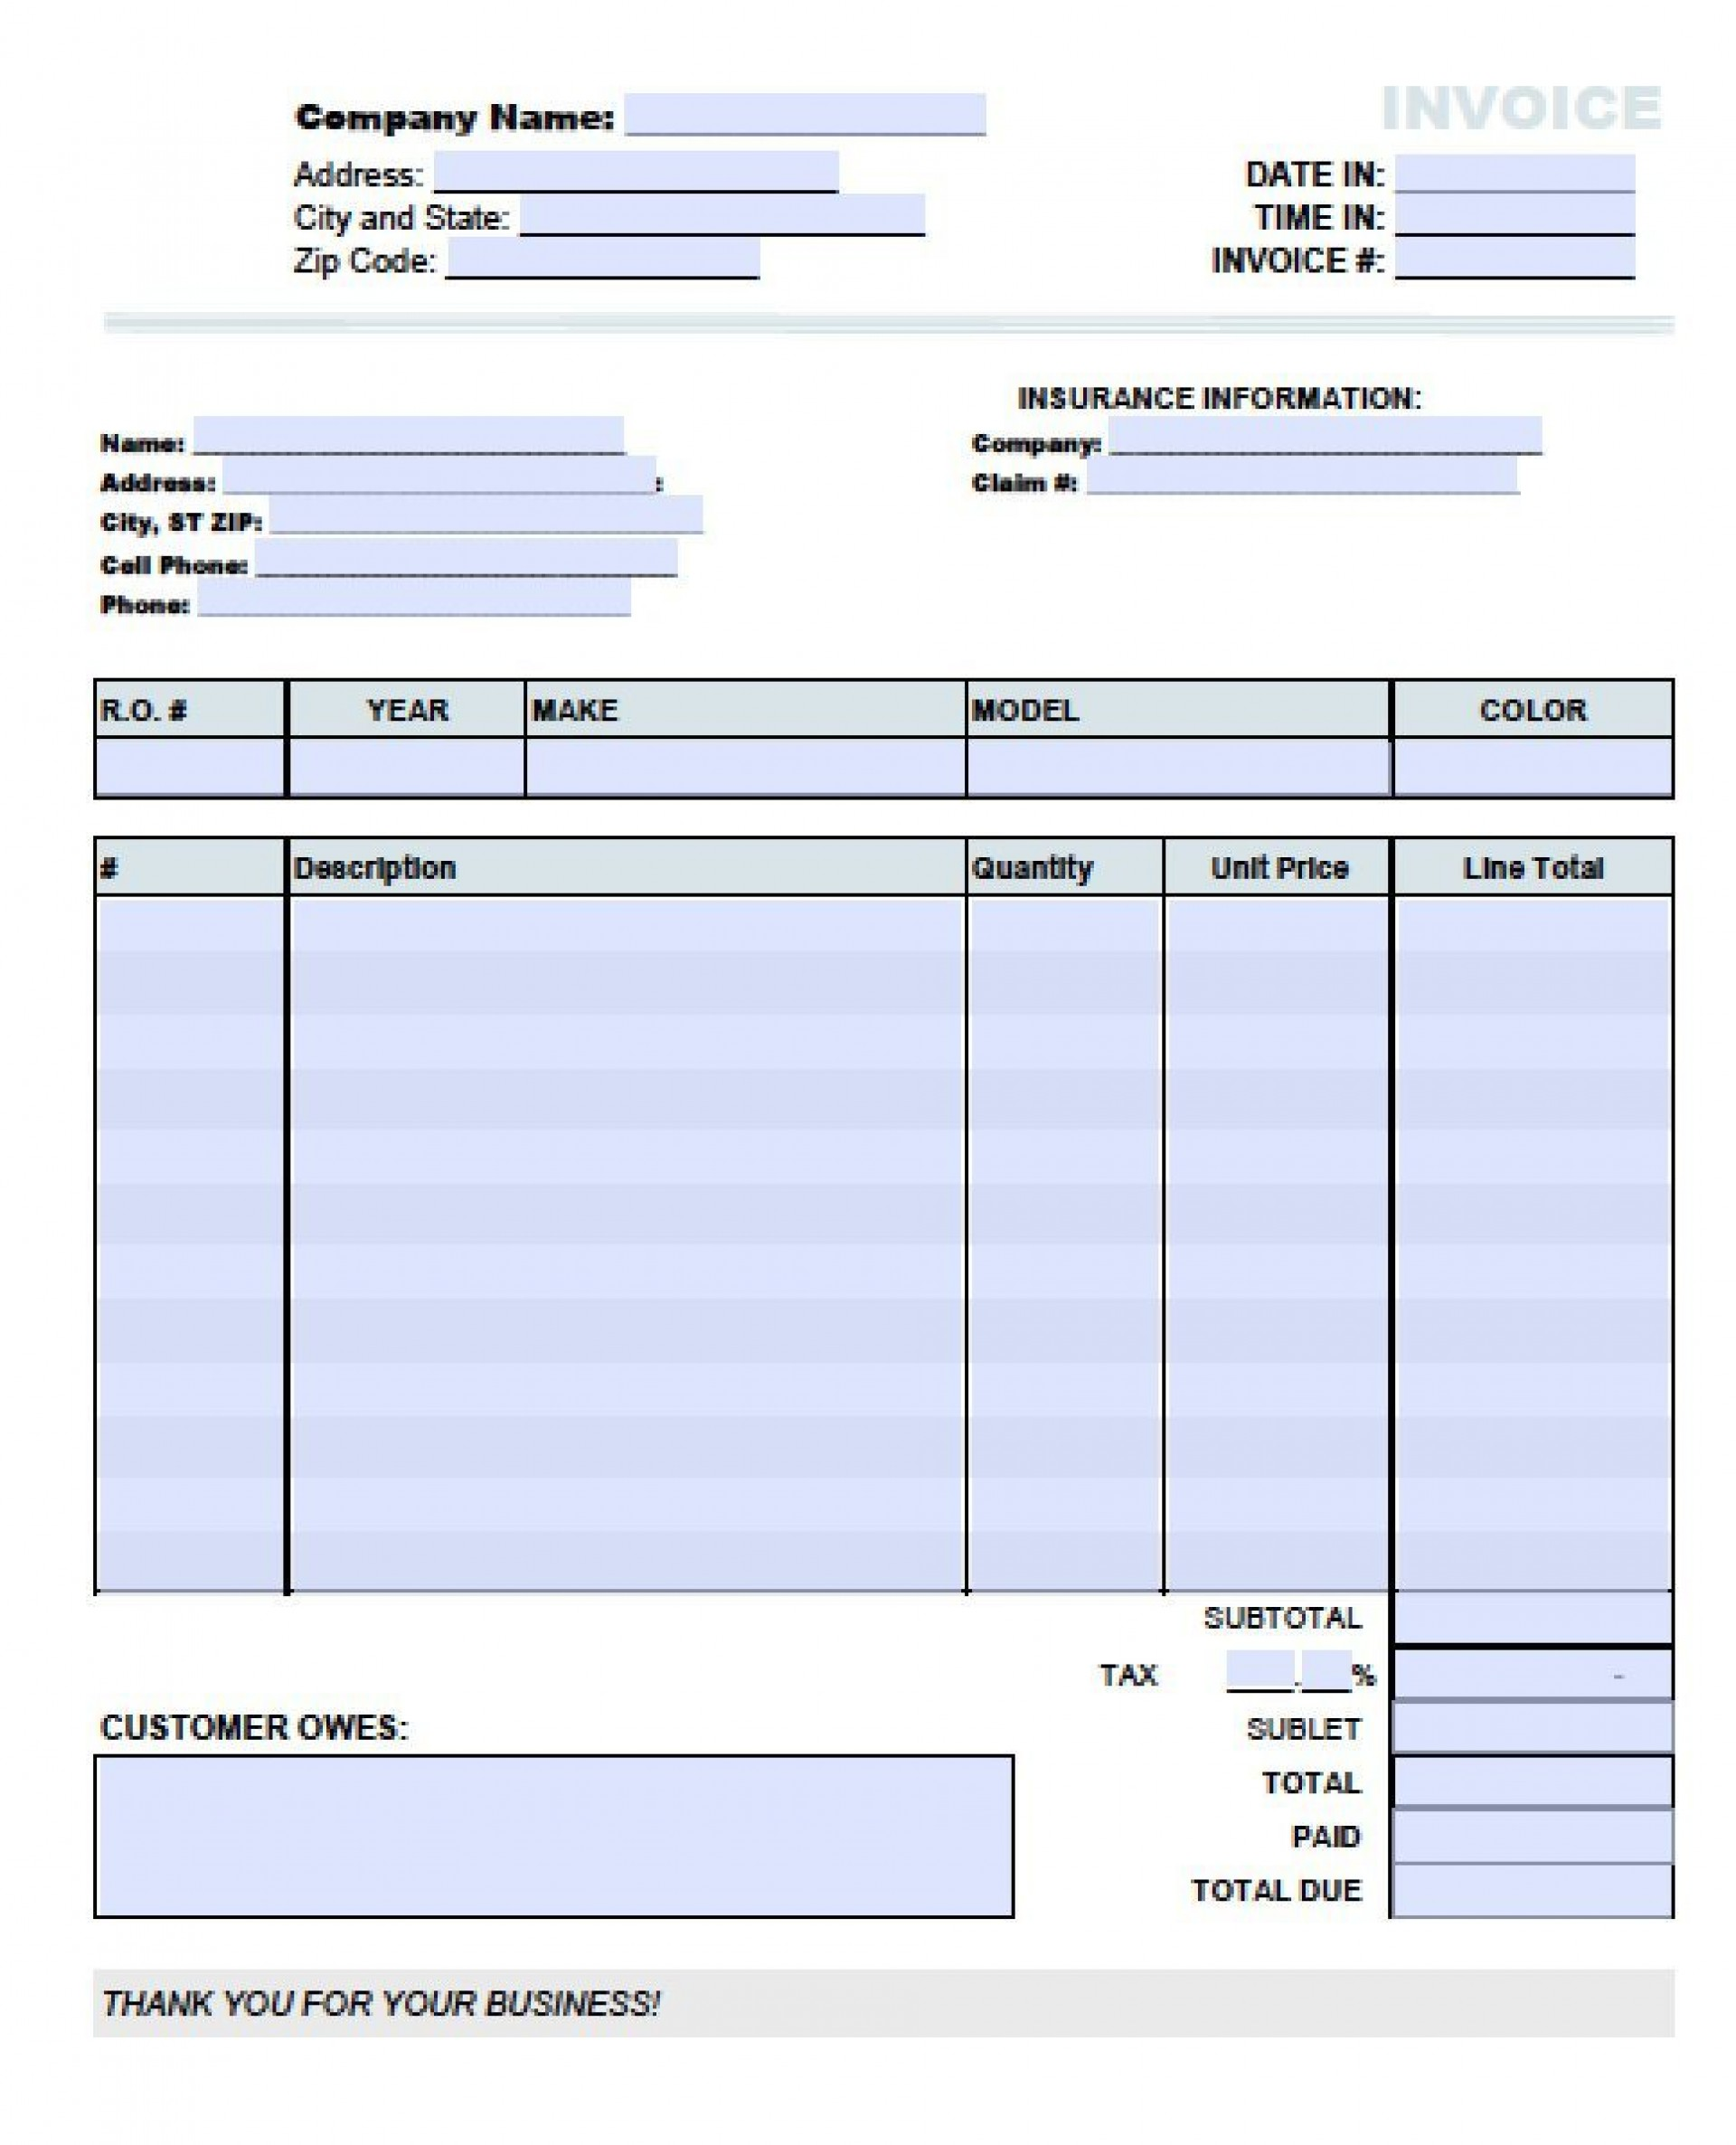 Auto Body Shop Invoice Template